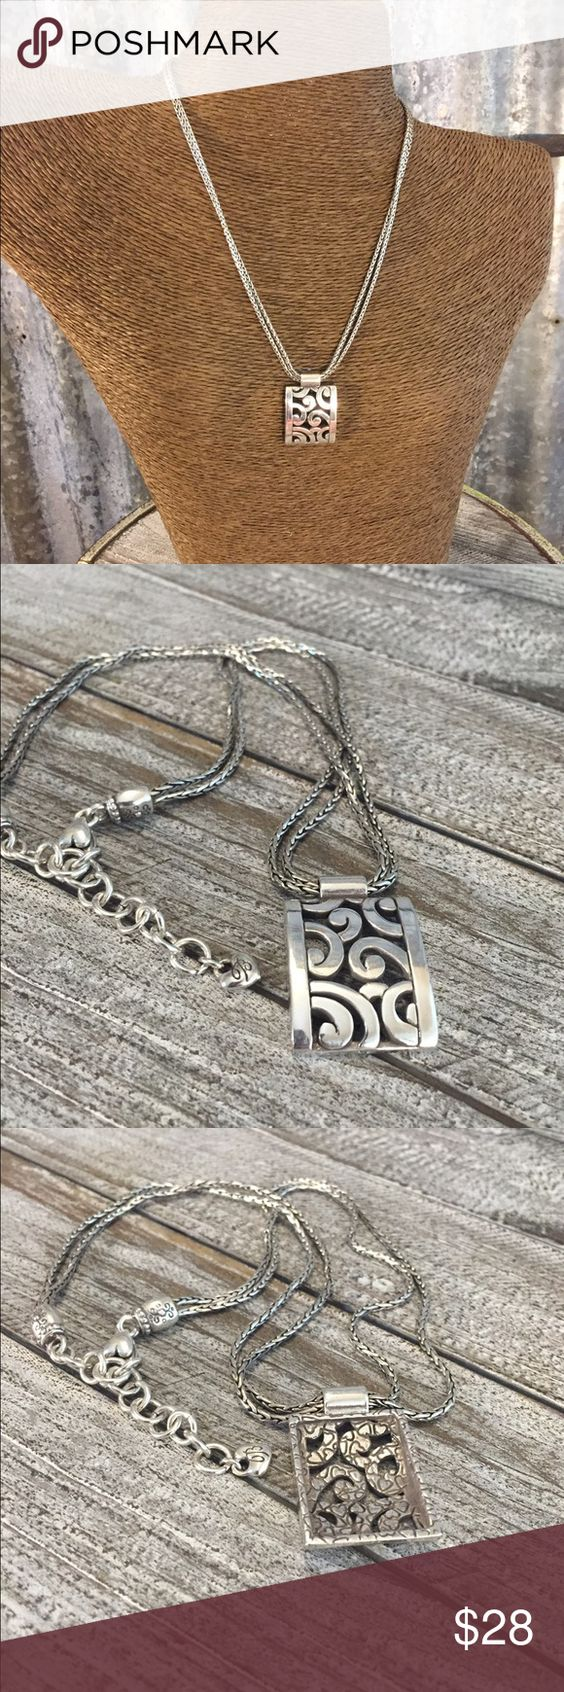 """🌺 New Listing 🌺Brighton Deco Lace Necklace Brighton  Deco Lace Necklace in good condition. Necklace is 15""""-18"""" adjustable and comes with Brighton tin in picture. Don't pass this up. Thanks for looking. ❤️❤️❤️ Brighton Jewelry Necklaces"""